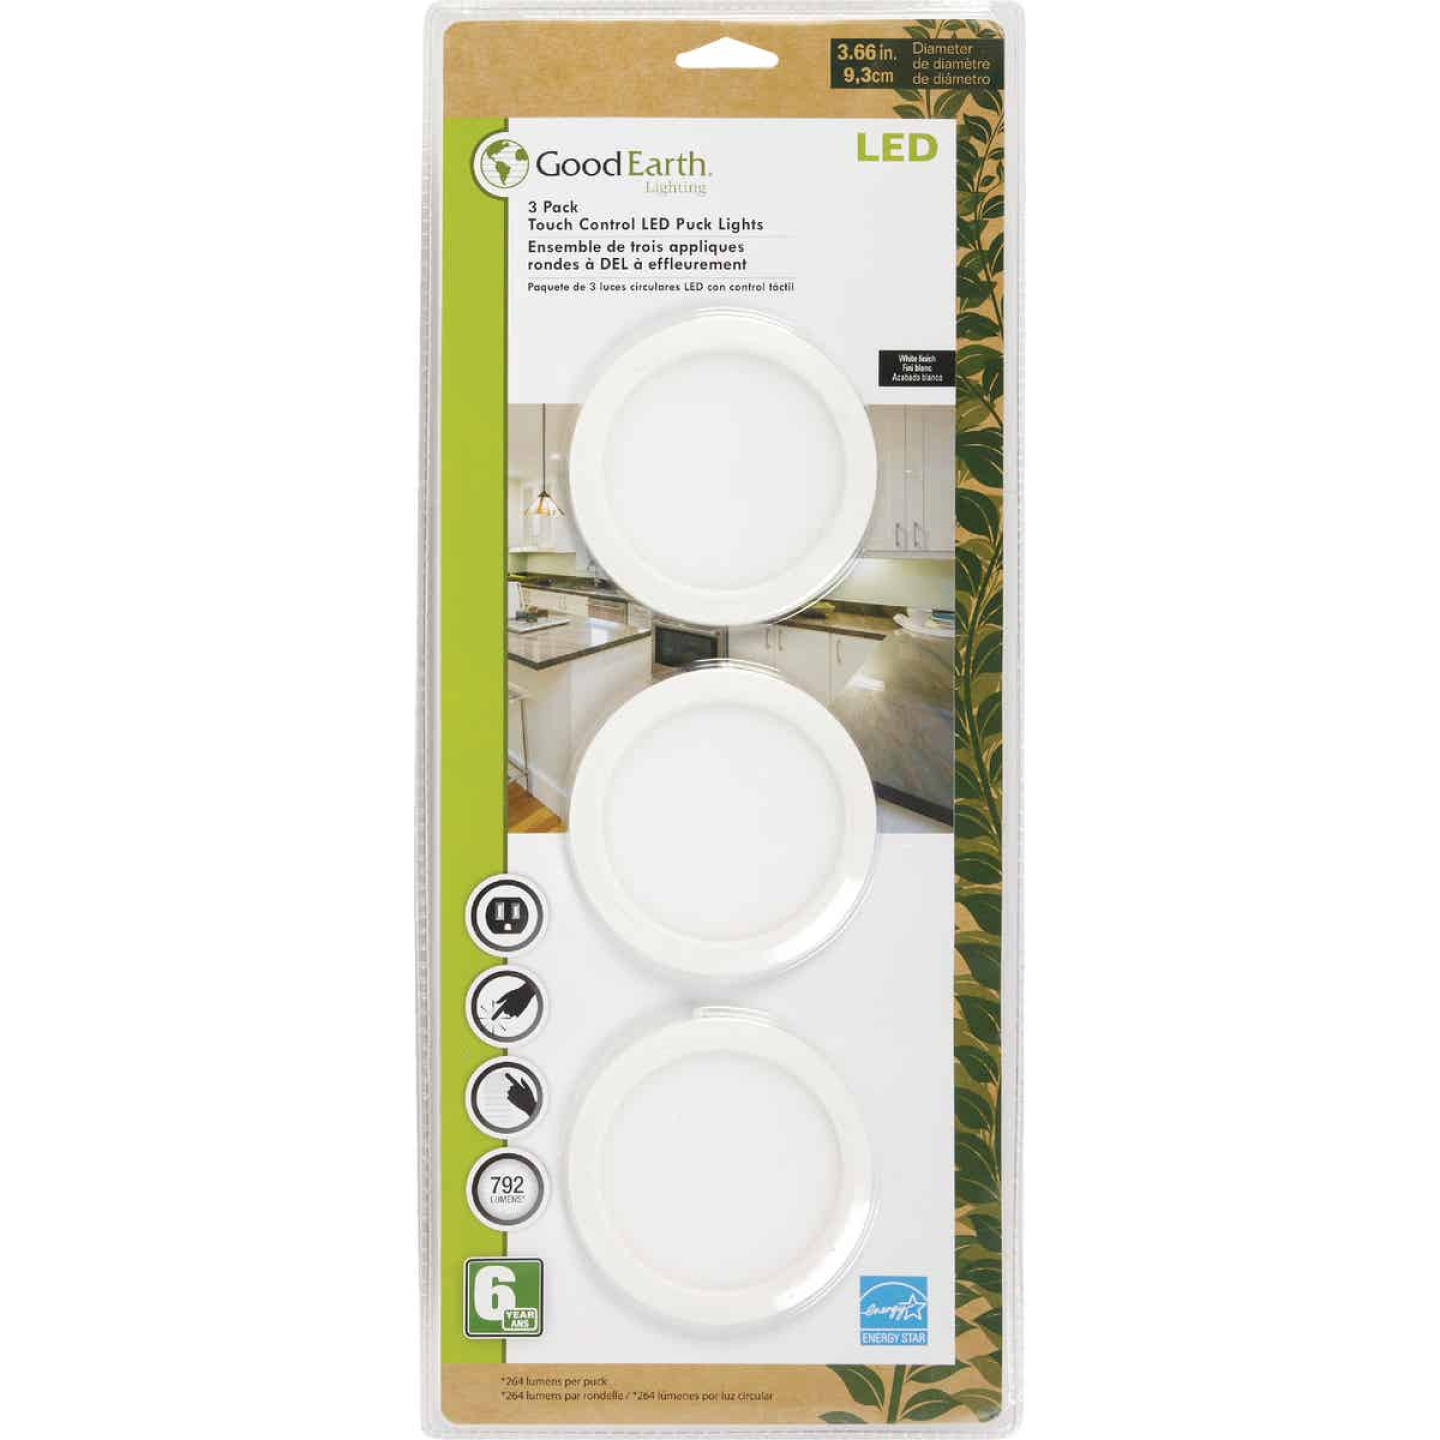 Good Earth Lighting 2.5 In. Plug-In White LED Under Cabinet Light Kit Image 2